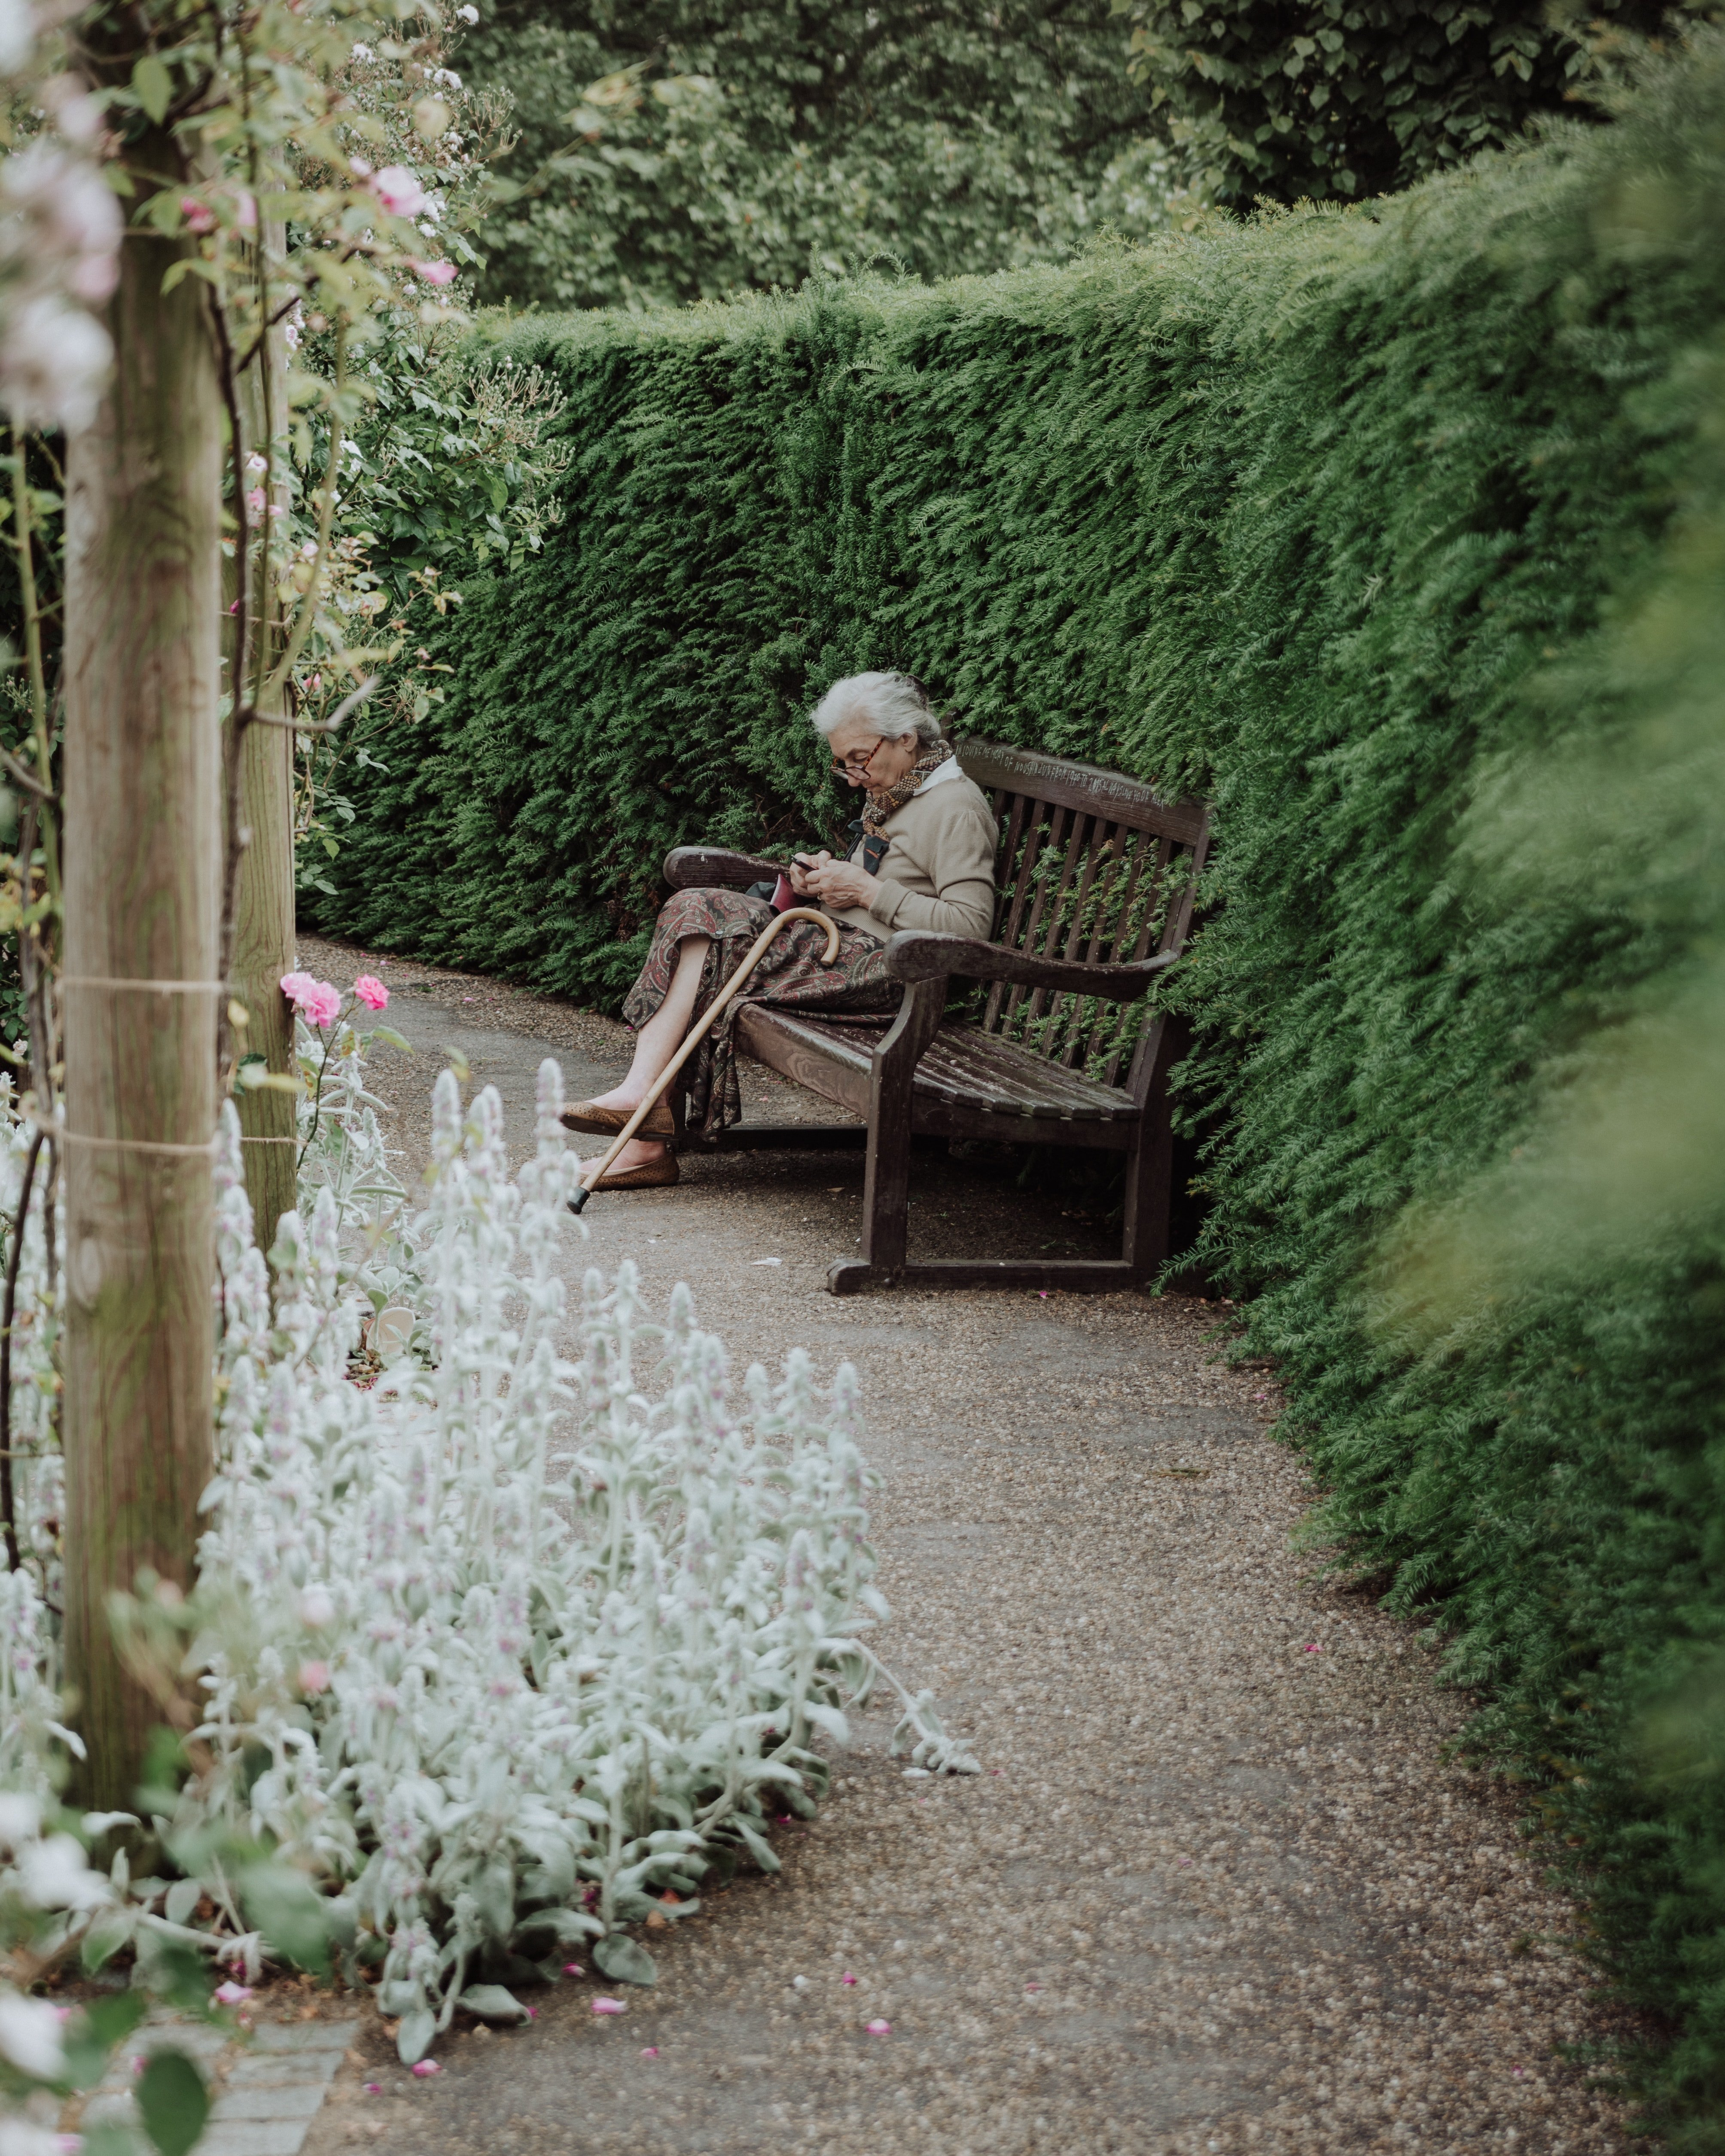 John was glad to find Claire safe and well in her little garden | Source: Pexels